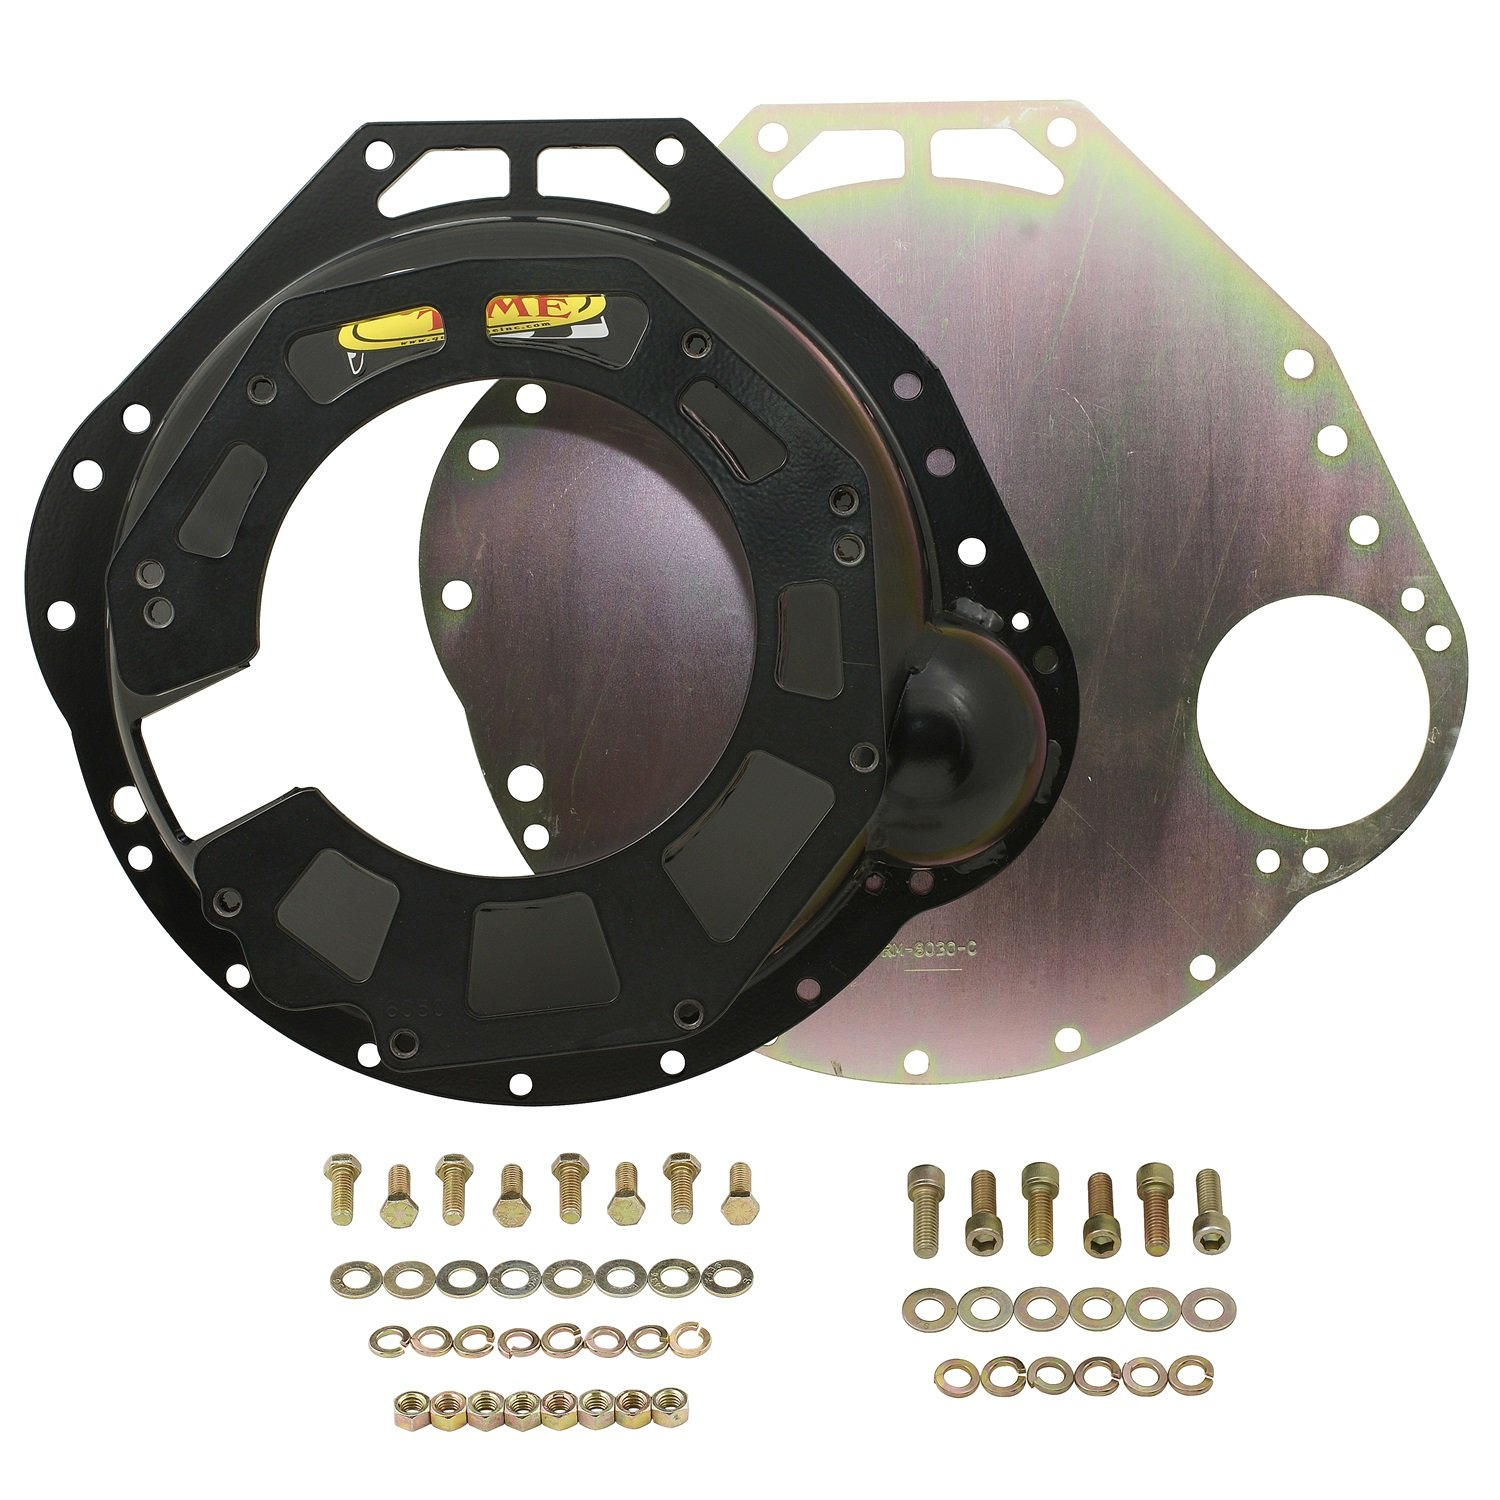 QuickTime (RM-6050) Ford 5.0L/5.8L Engine to T-56 Dodge Viper Transmission Bellhousing